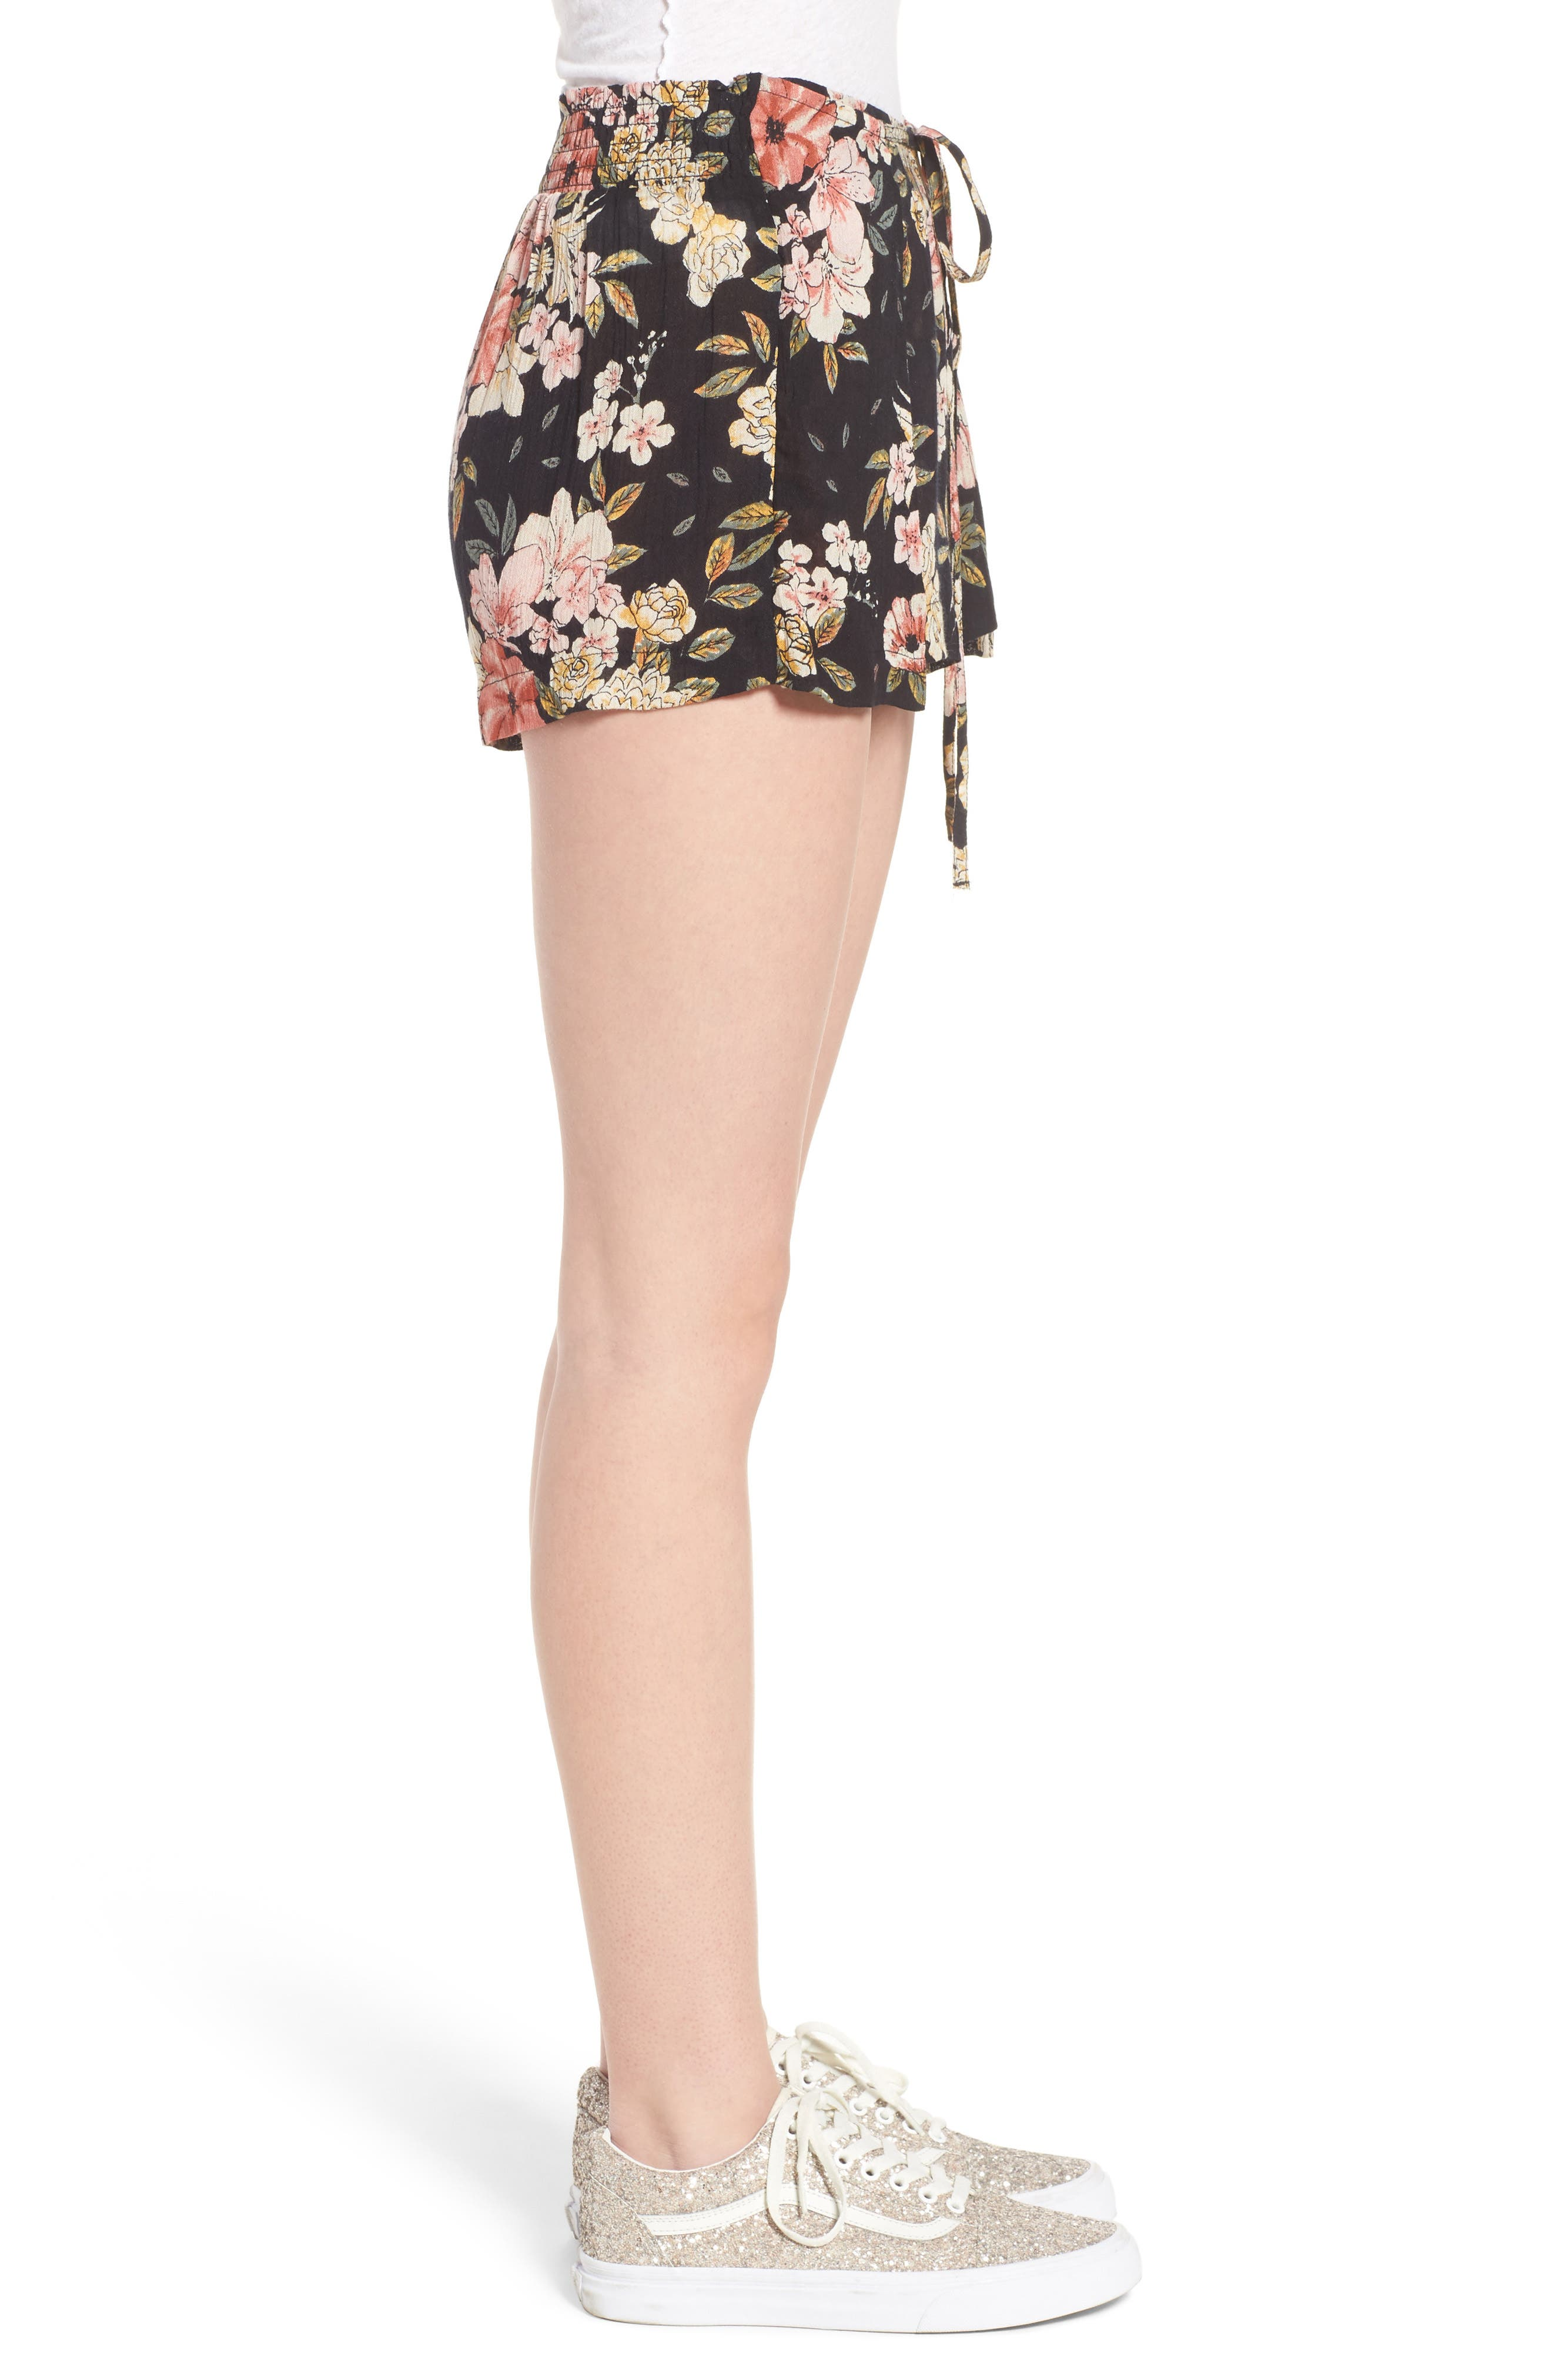 Trippy Day Floral Print Shorts,                             Alternate thumbnail 3, color,                             001